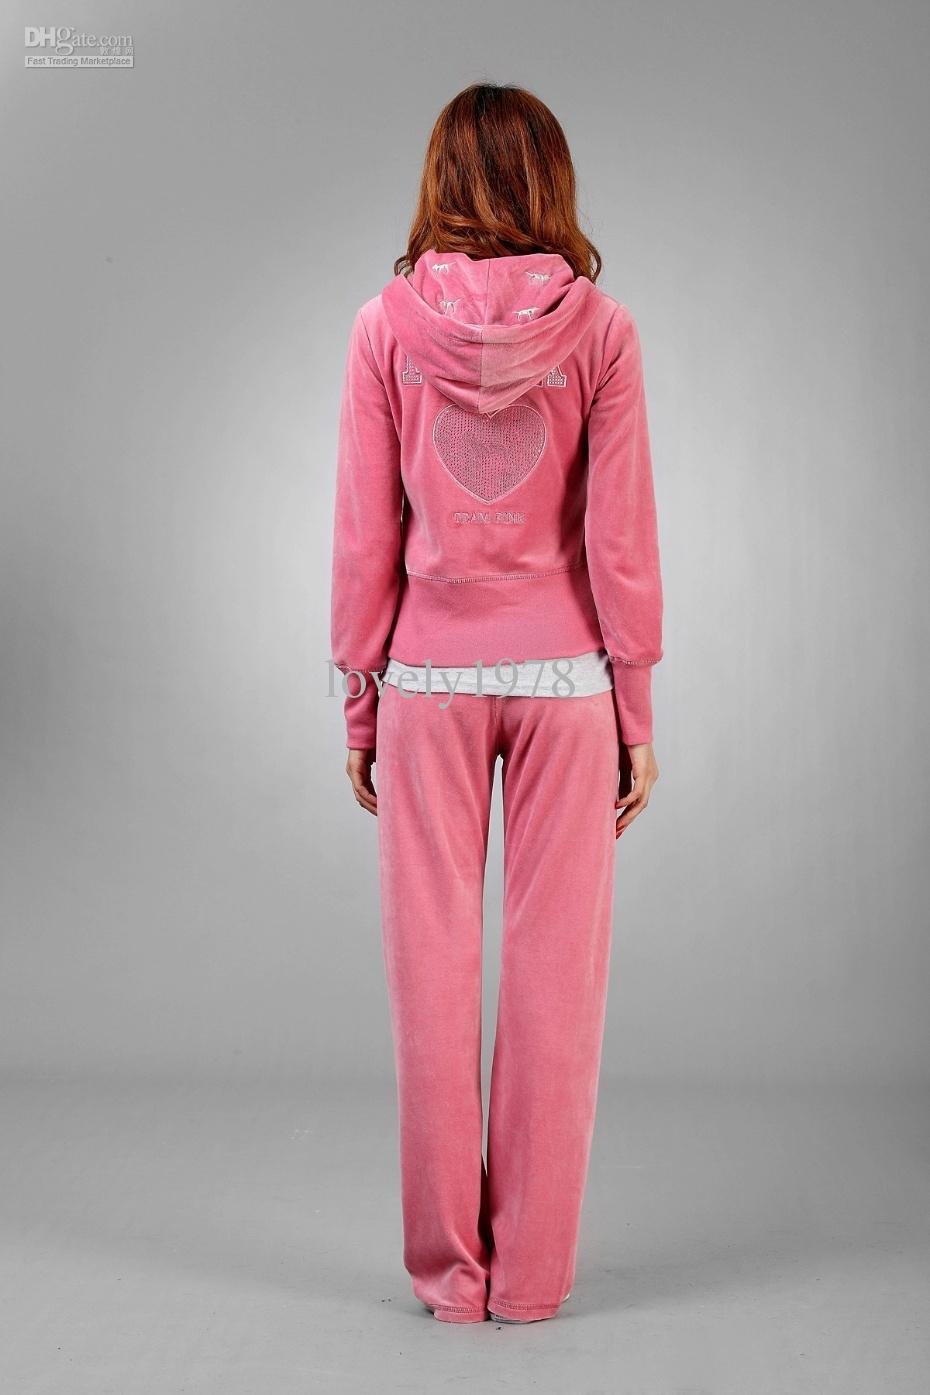 Brand new Women s Tracksuit tracksuits/sportswear/Women s Clothing